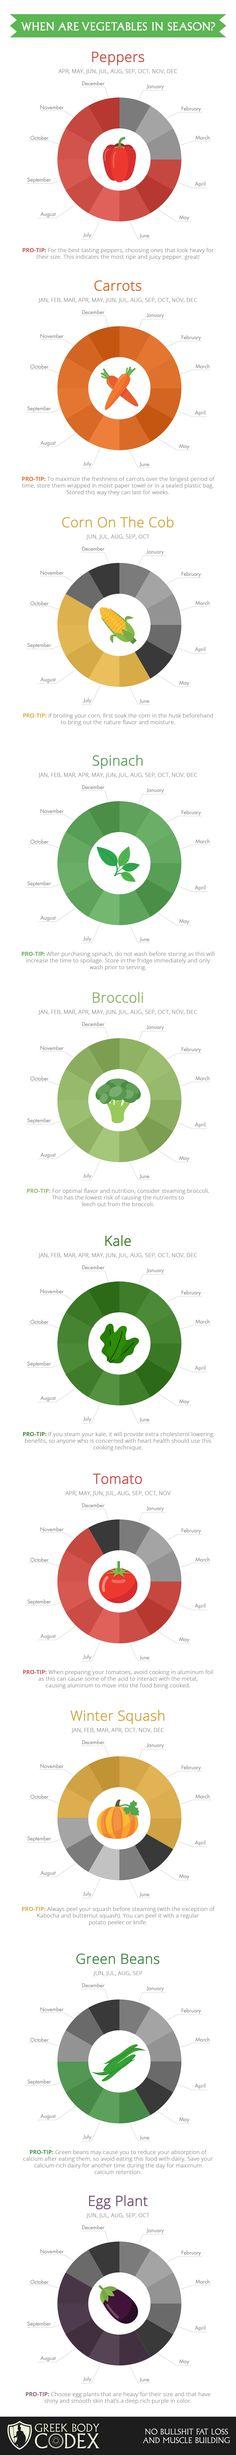 When are Vegetables in Season? [infographic]